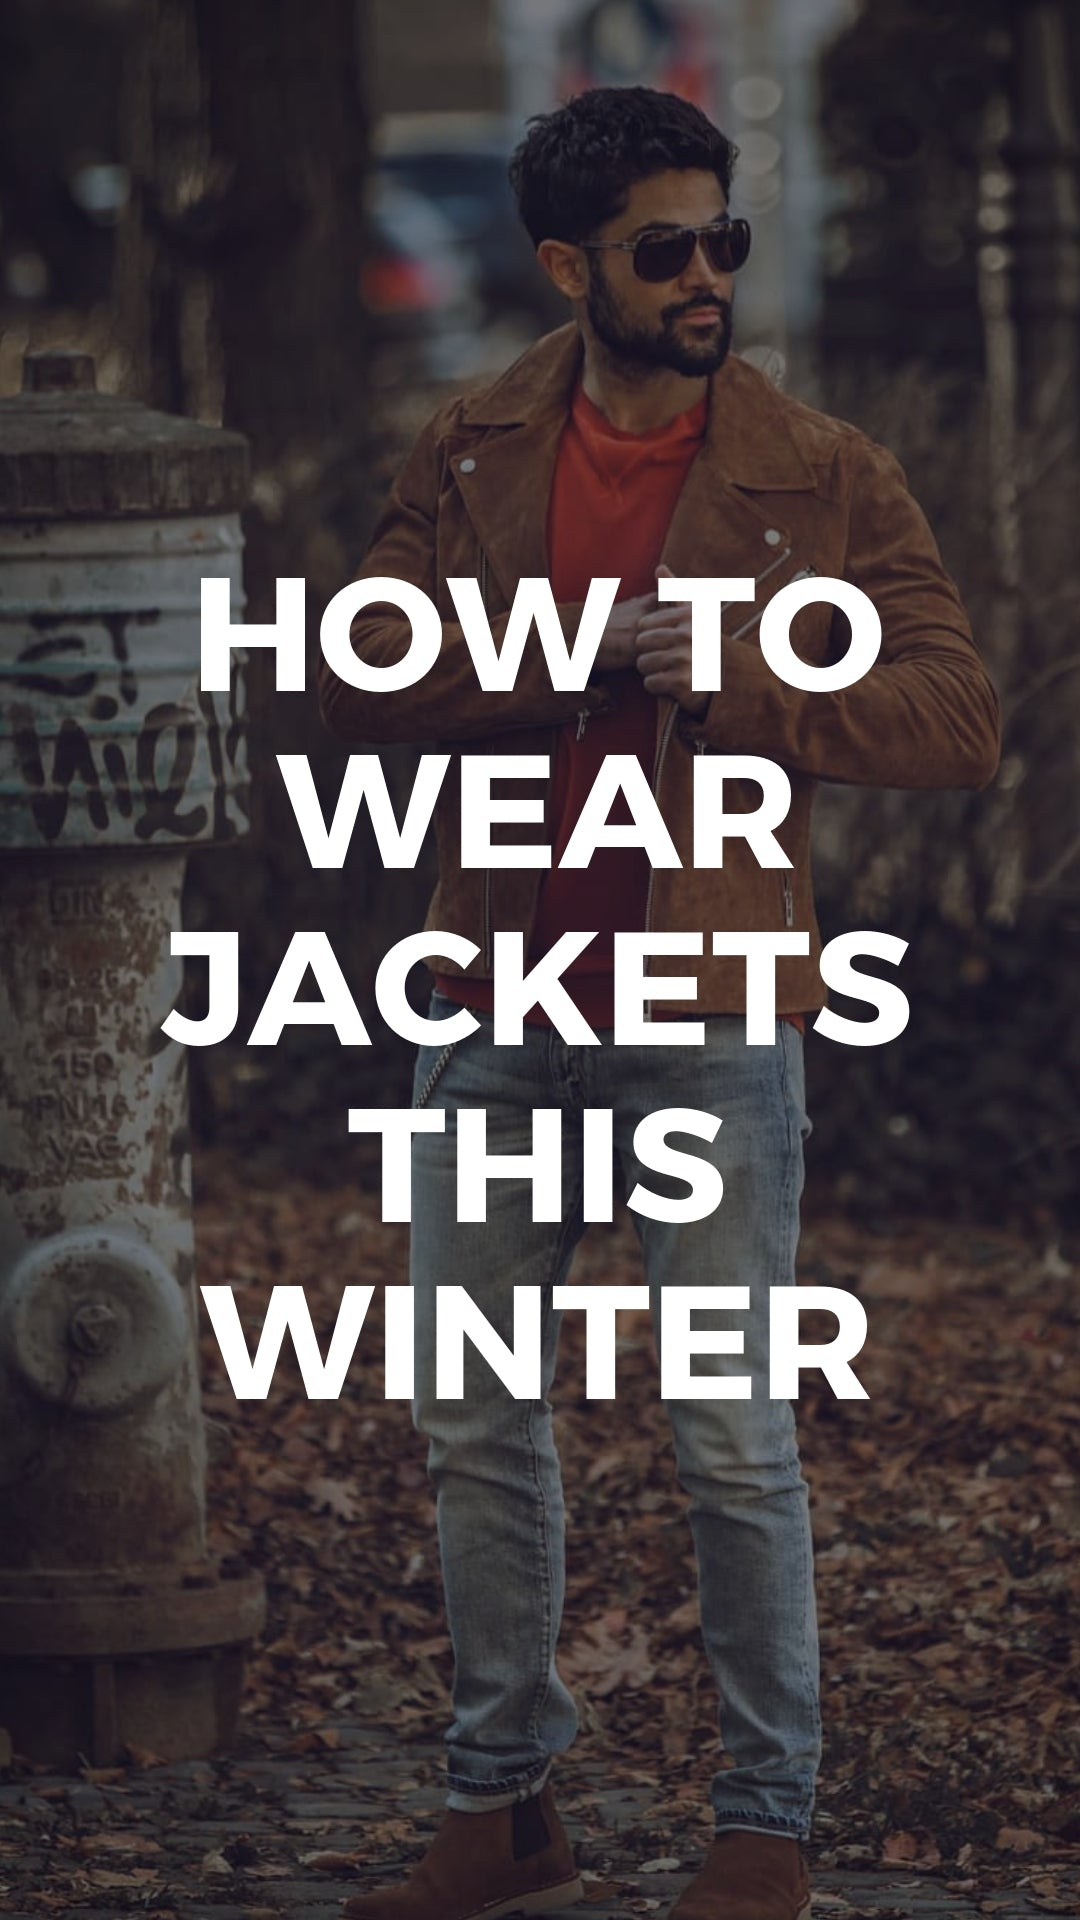 5 Ways To Wear Jacket This Winter #fall #style #winterfashion #mens #fashion #street #style